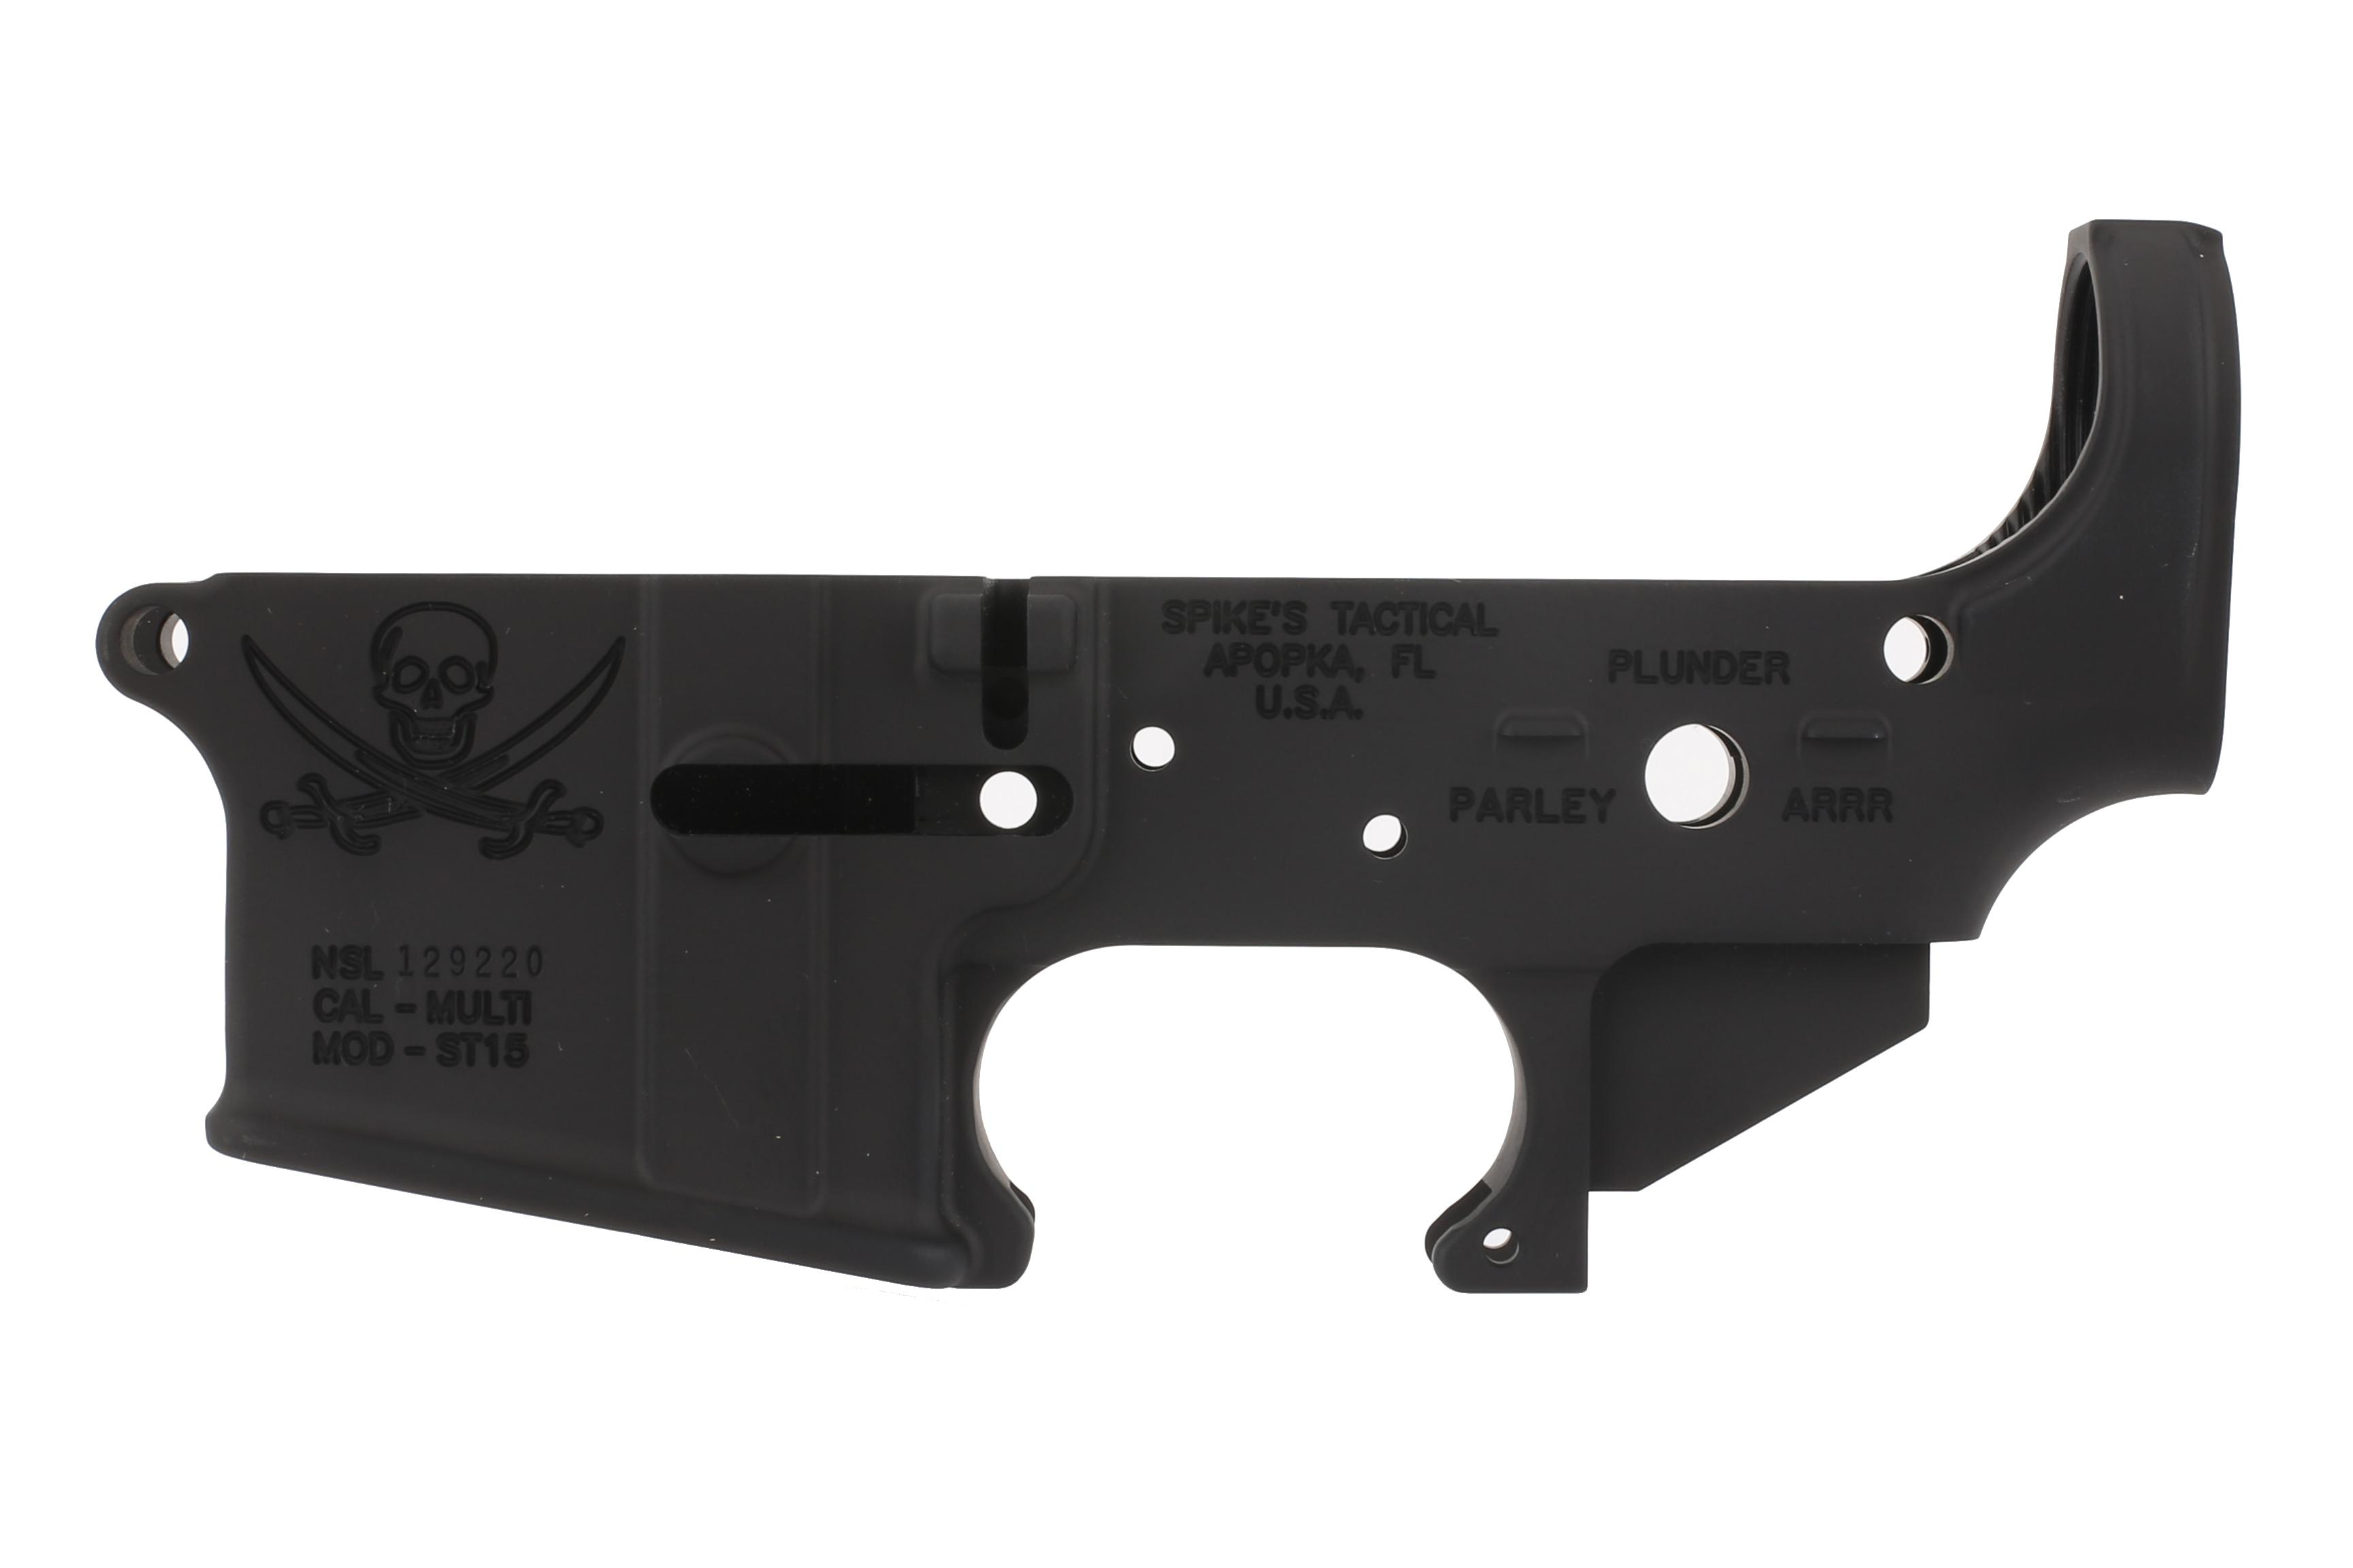 Spike's Tactical Calico Jack Stripped AR-15 Lower Receiver